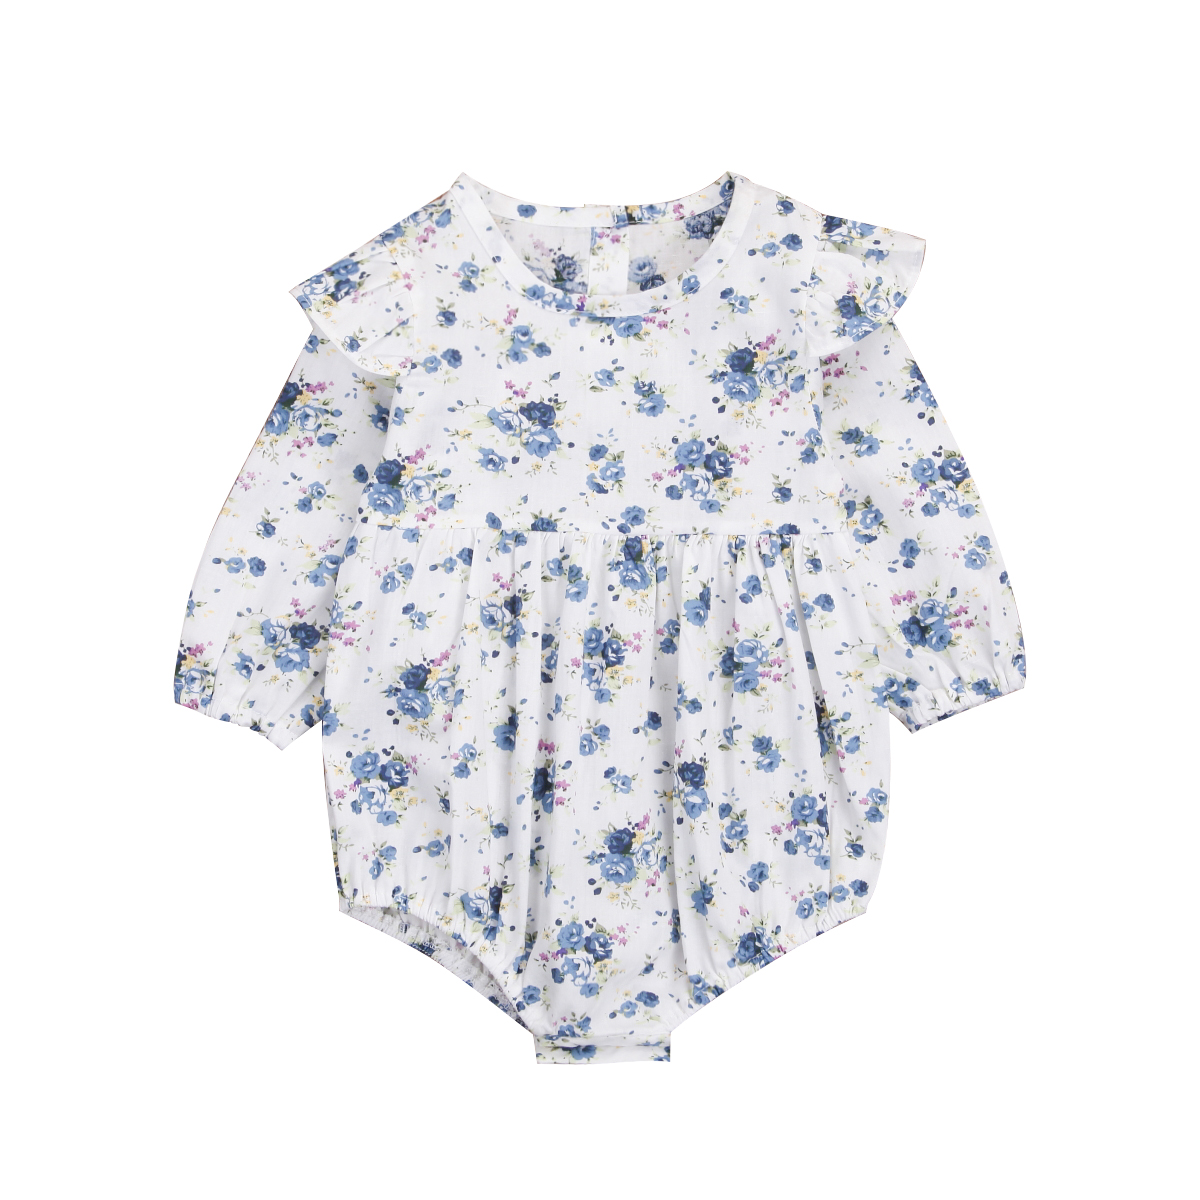 2018 Hot Sell High-quality Cute Newborn Toddler Baby Girl Blue Floral Romper Jumpsuit Outfits Clothes 0-3M